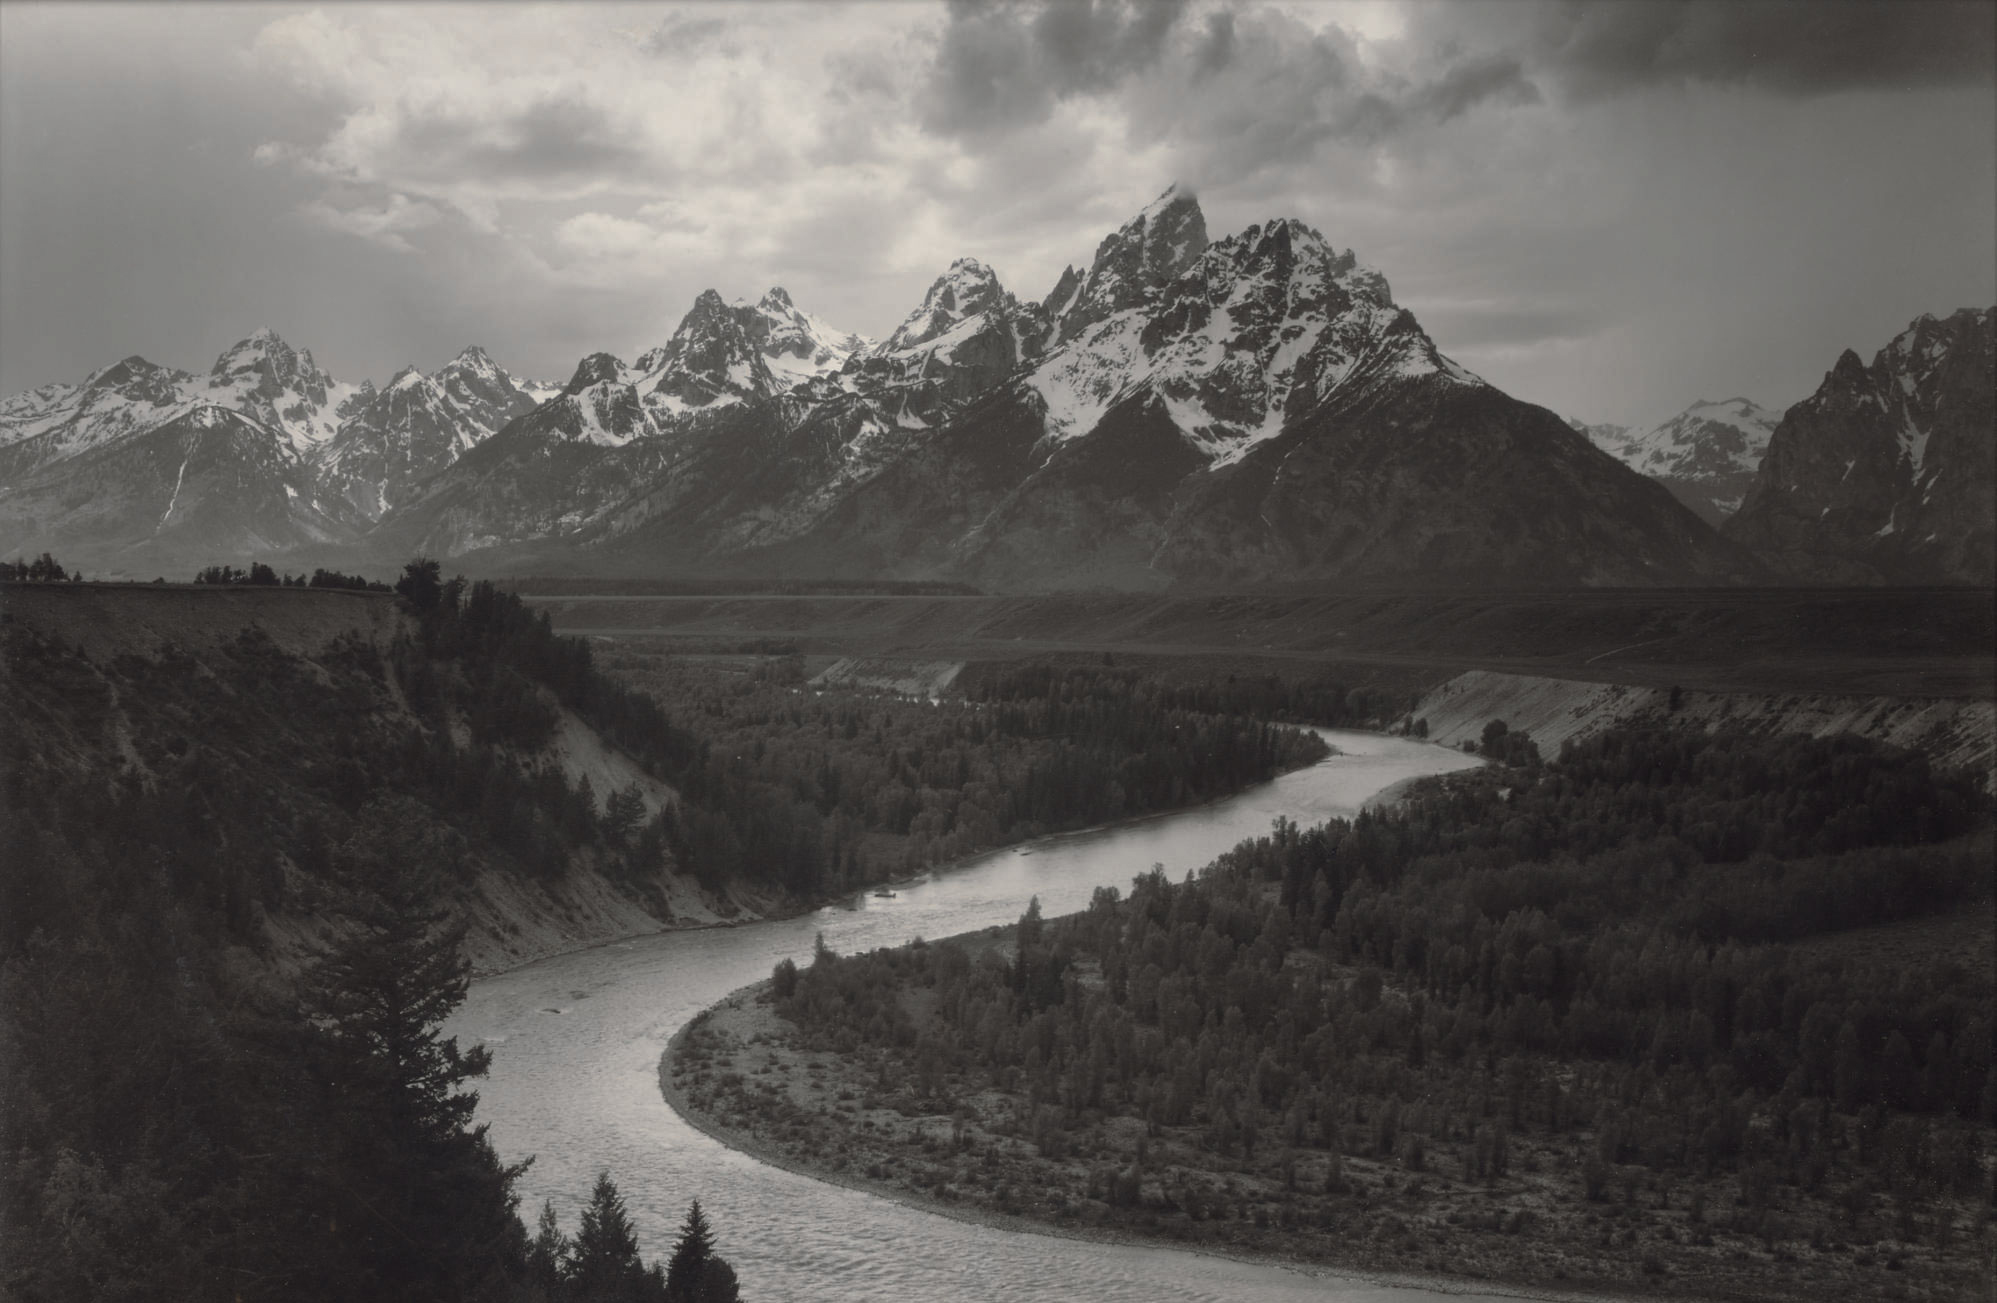 Grand Tetons and the Snake River, Grand Teton National Park, Wyoming, 1942